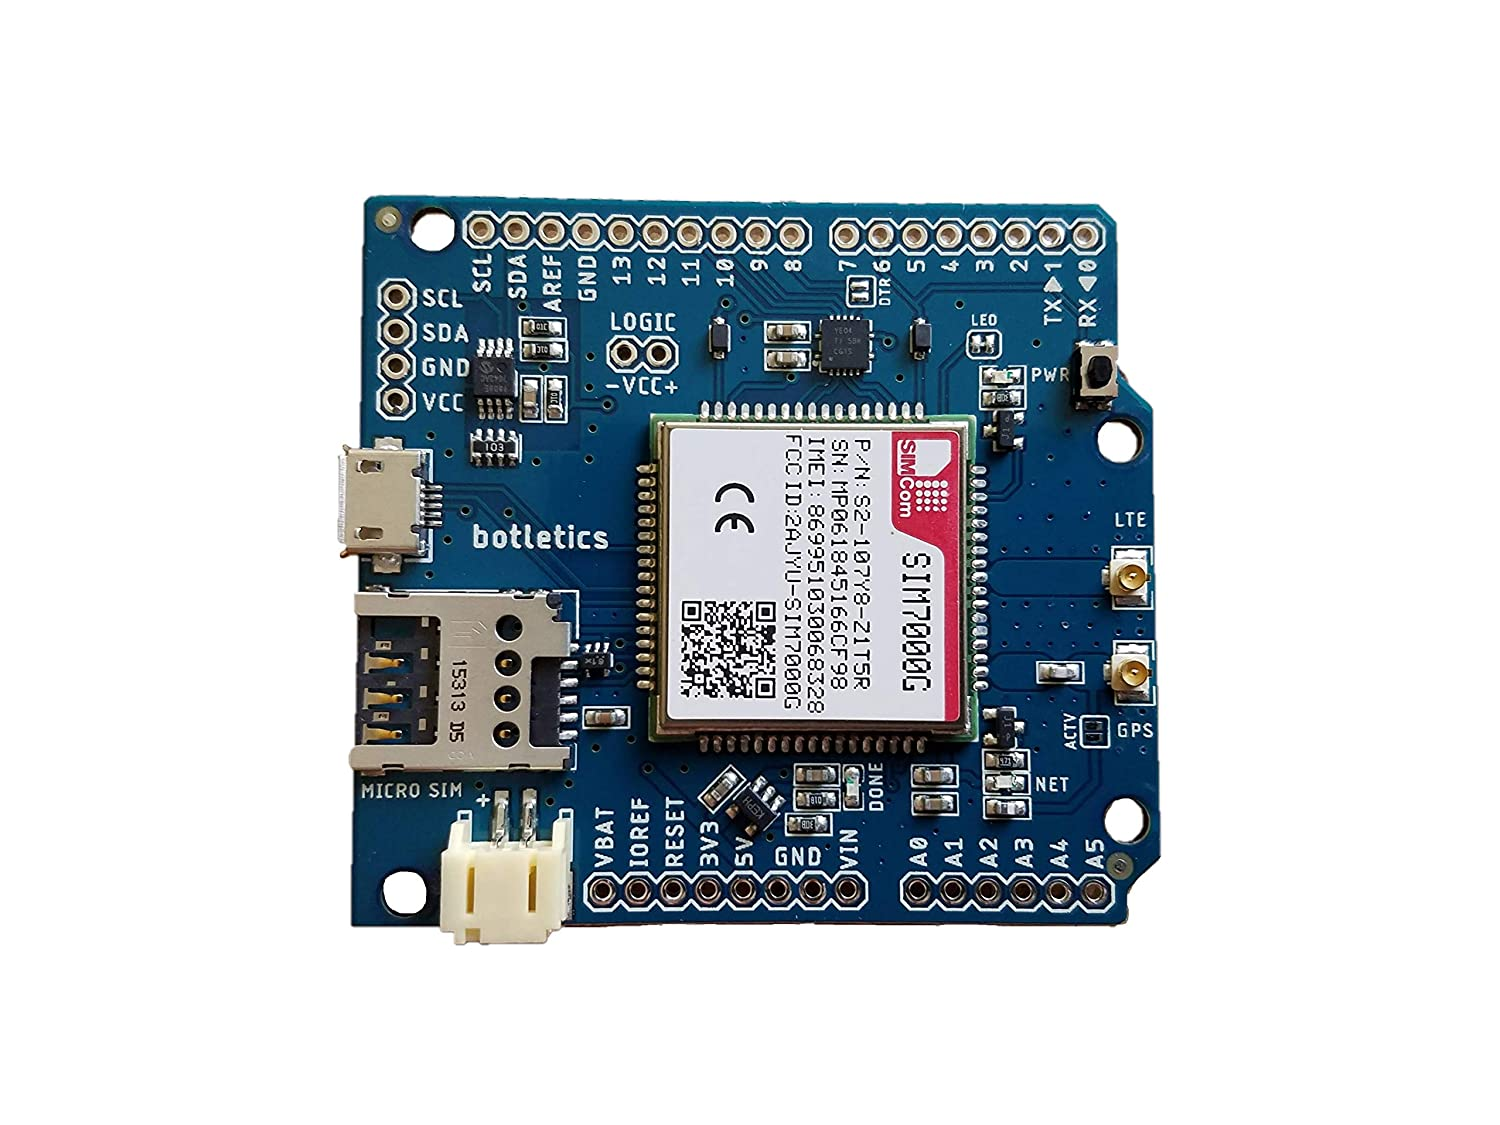 Botletics SIM7000 LTE CAT-M1 NB-IoT Cellular + GPS + Antenna Shield Kit for  Arduino (SIM7000G)